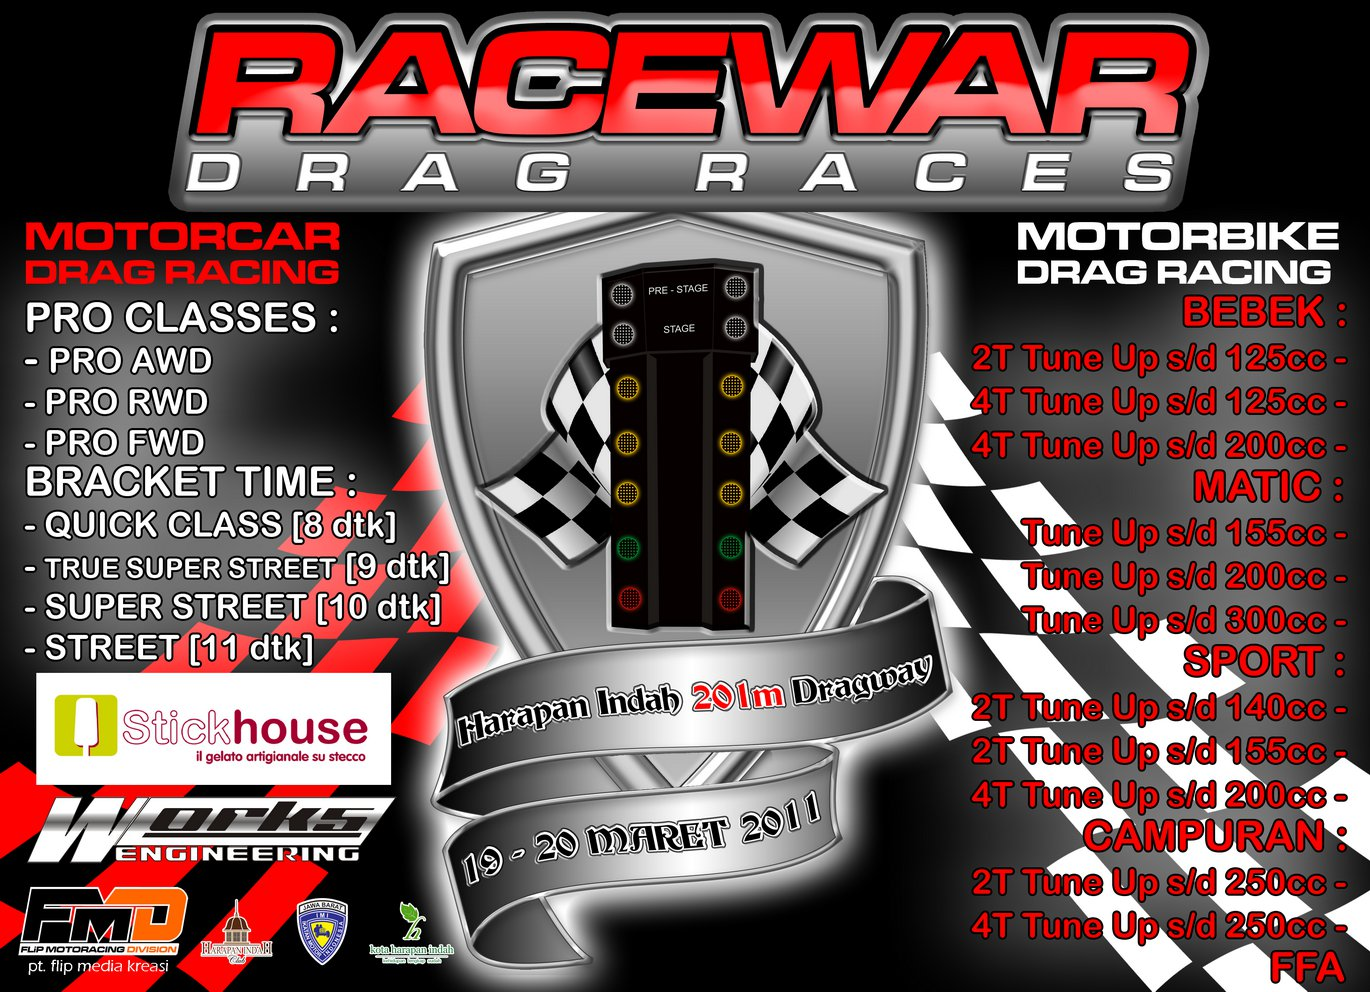 ... Matic | Matic Drag Bike: Racewar Drag Races - Drag Bikes Race Bekasi